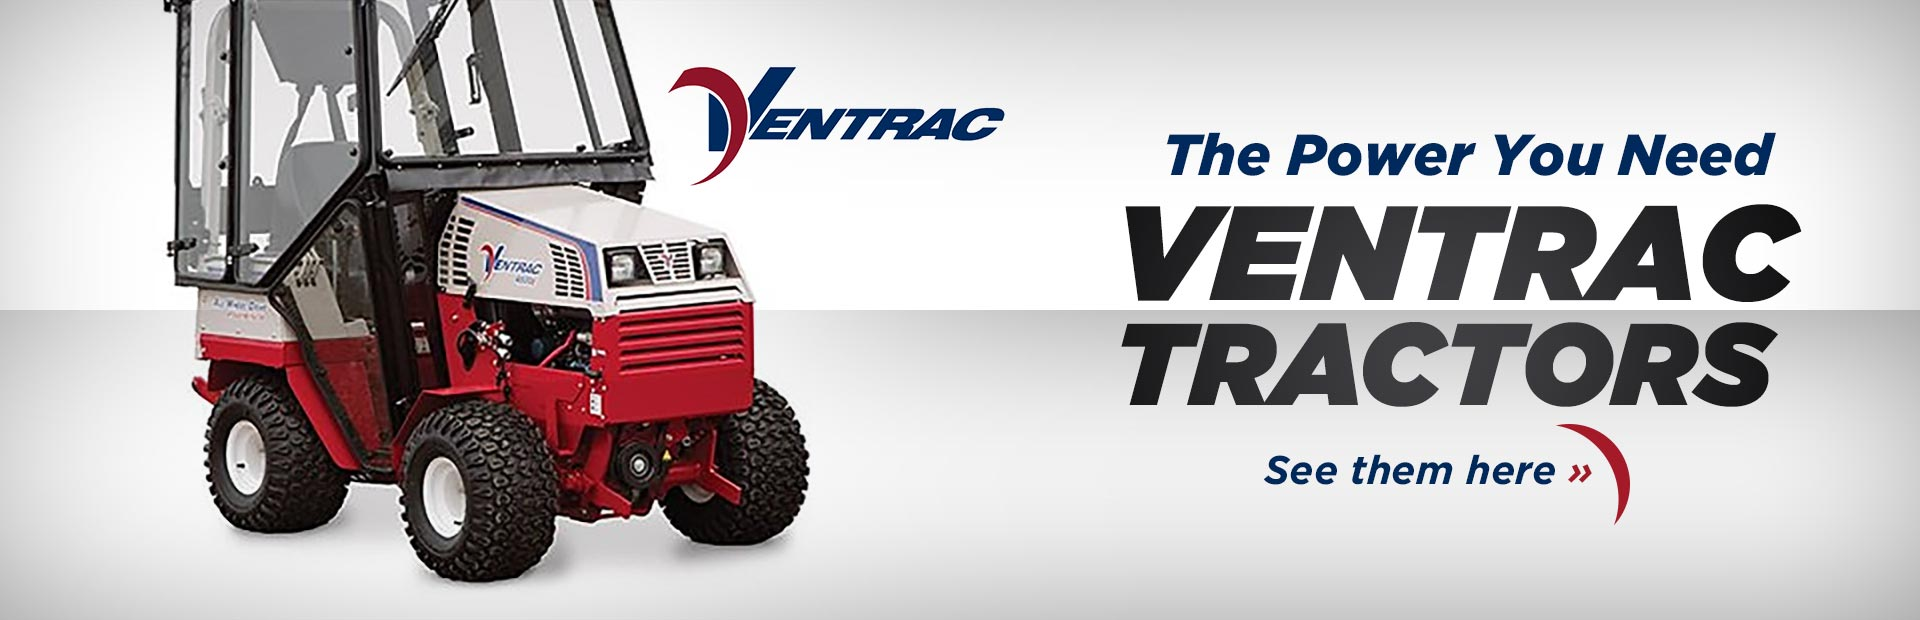 Ventrac Tractors: Click here to view the models.